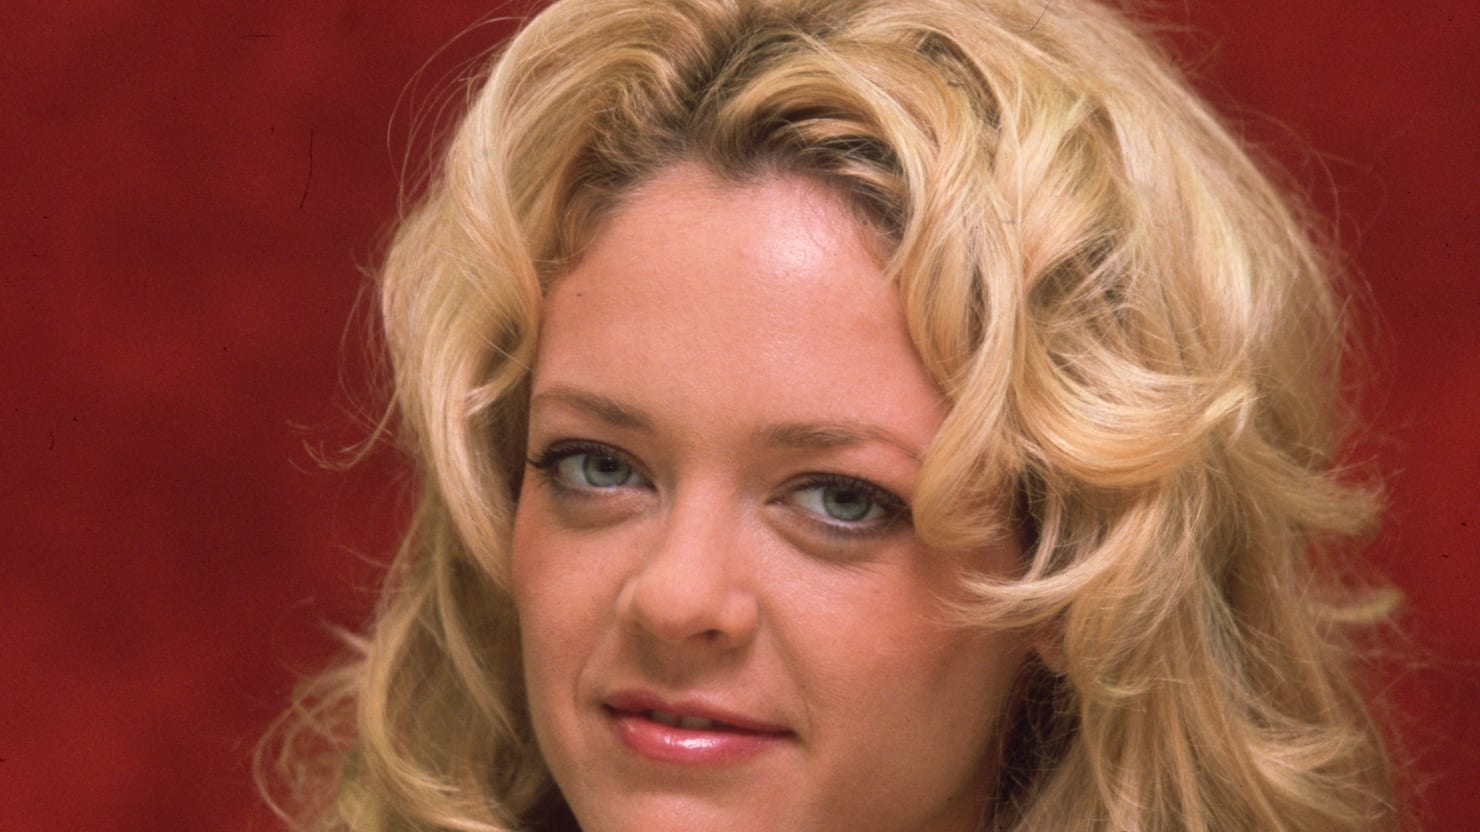 pictures Lisa Robin Kelly